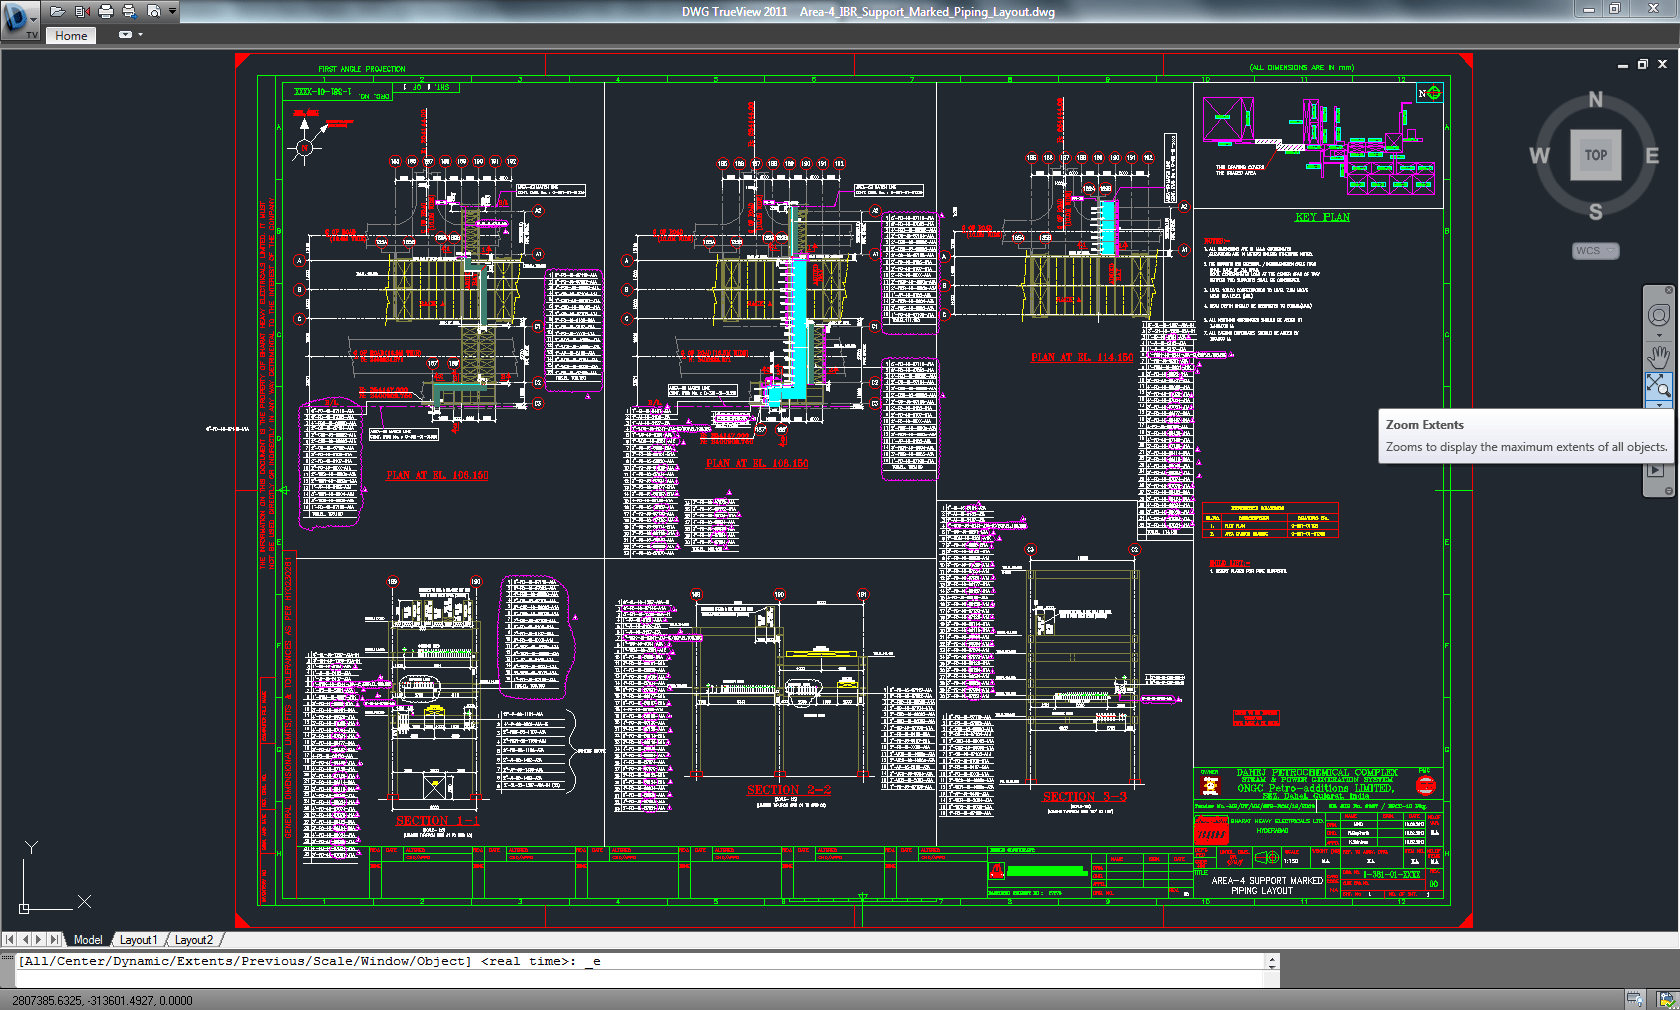 piping layout design